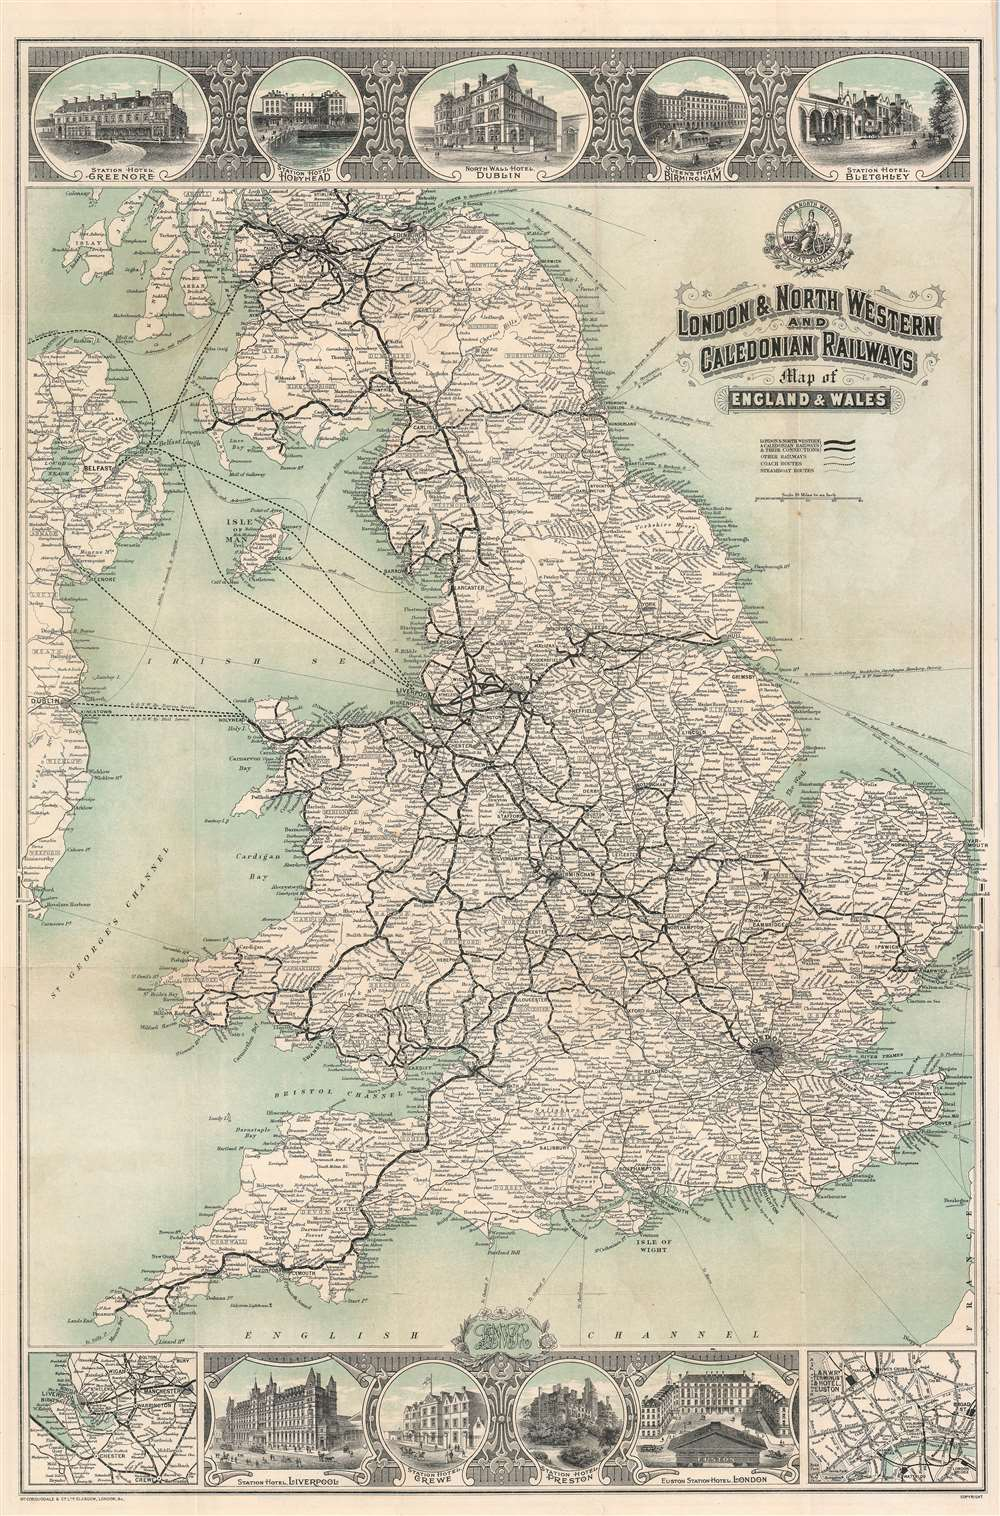 1911 McCorquodale Railroad Map of England and Wales